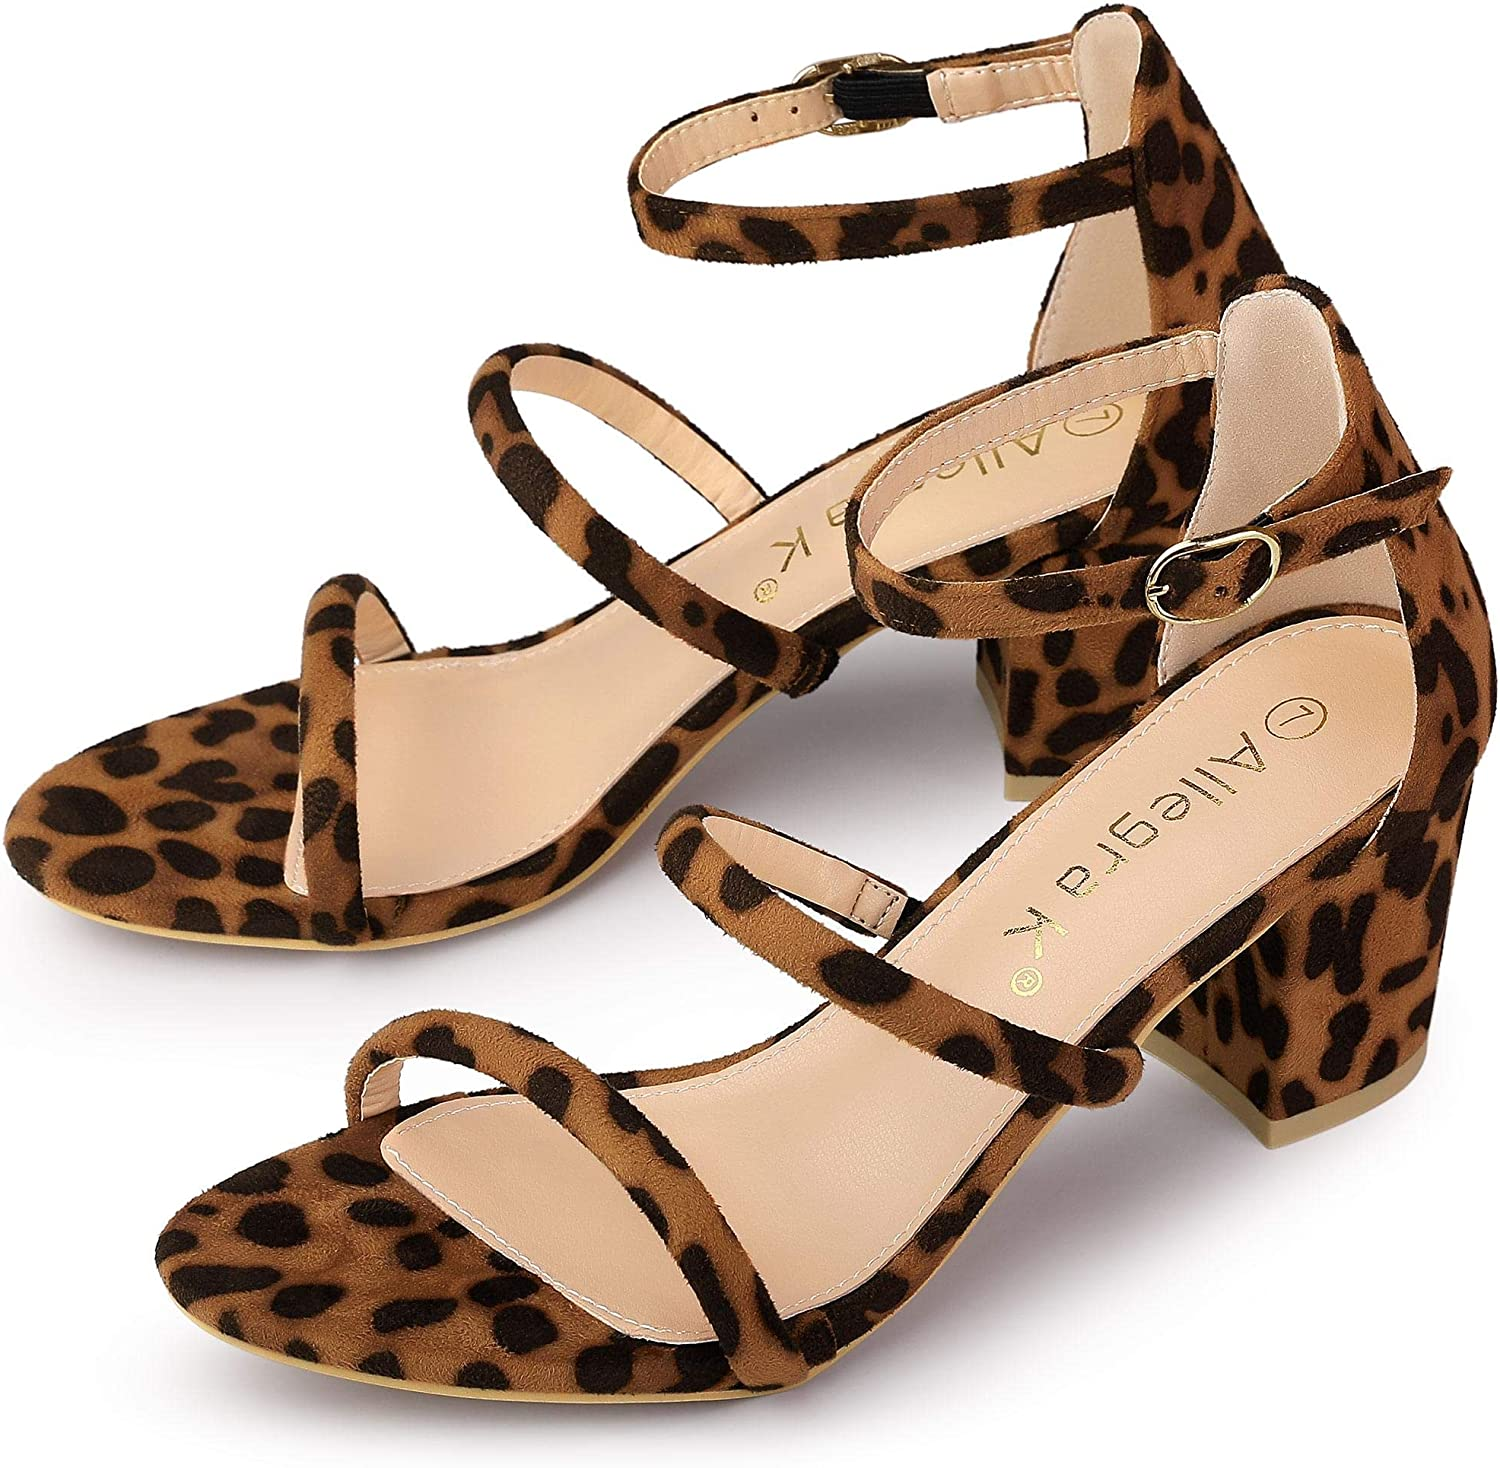 Allegra K Women's Open Toe Strap Ankle Heels Sandals Quantity limited Chunky Cheap sale